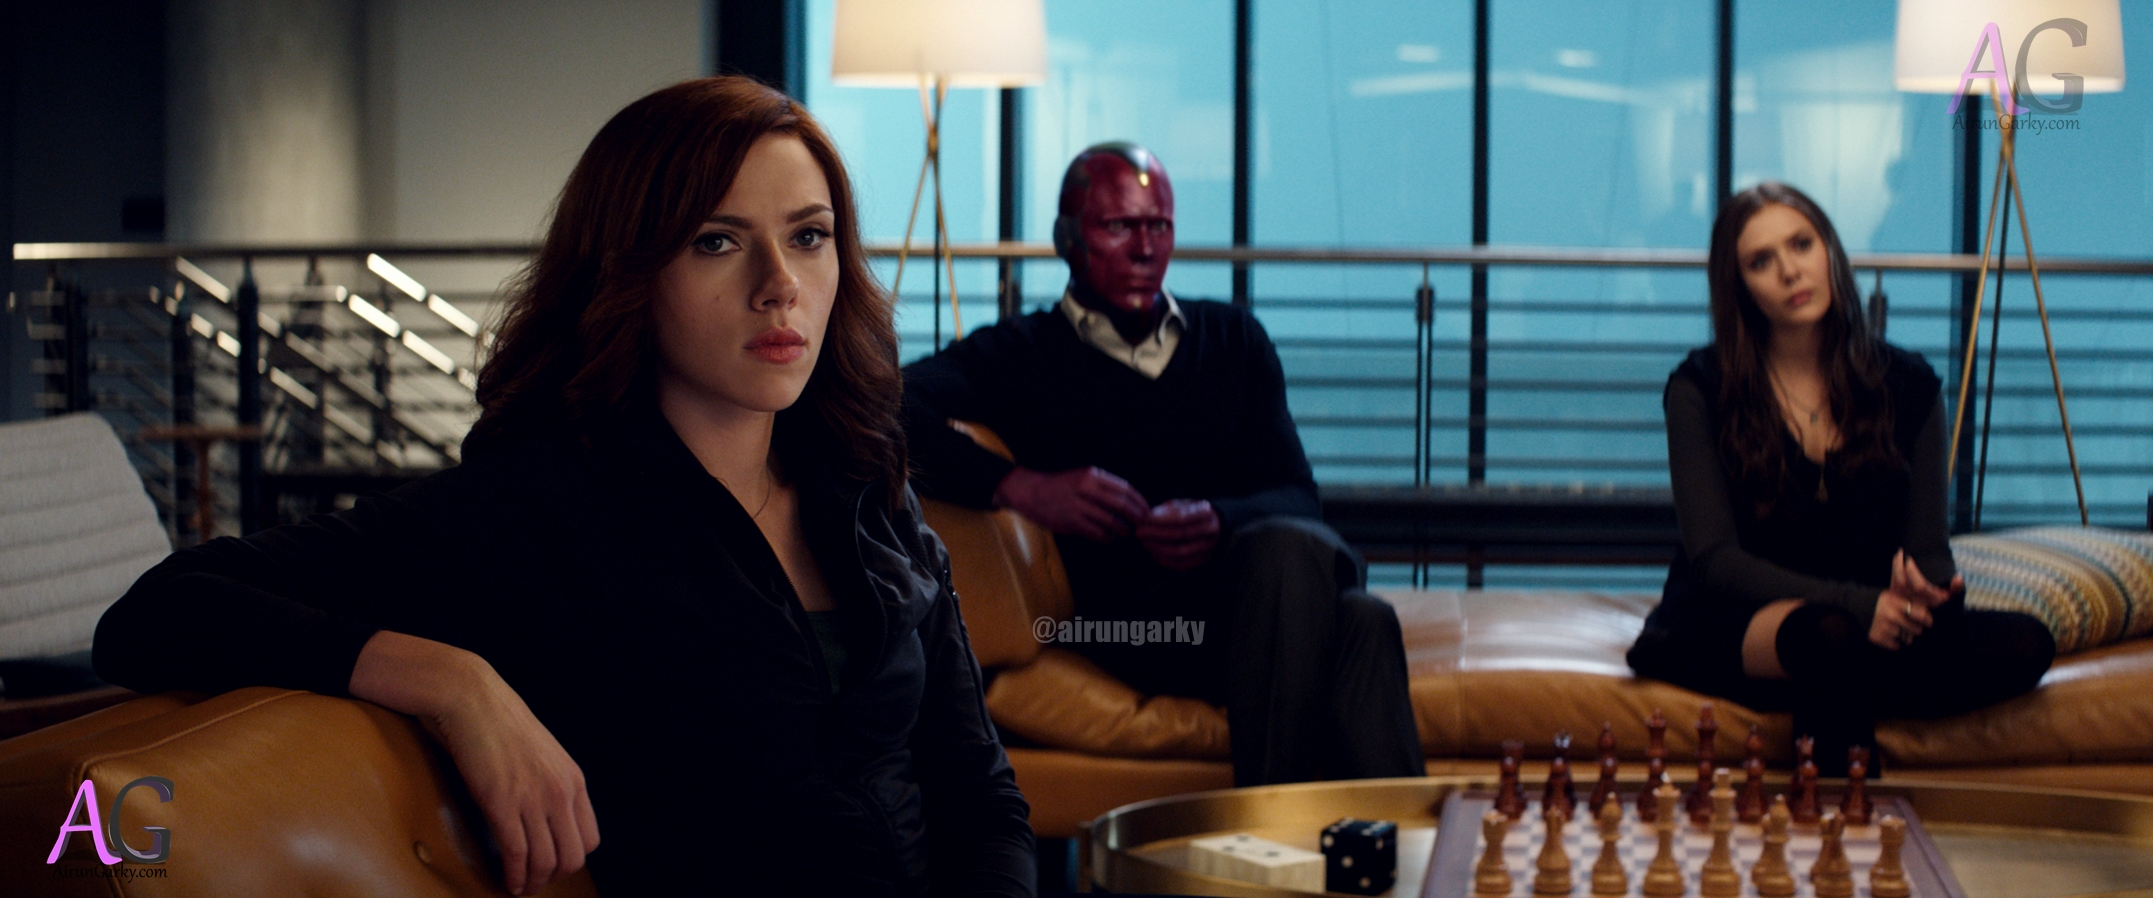 Image result for Captain America: Civil War - scarlet witch and black widow